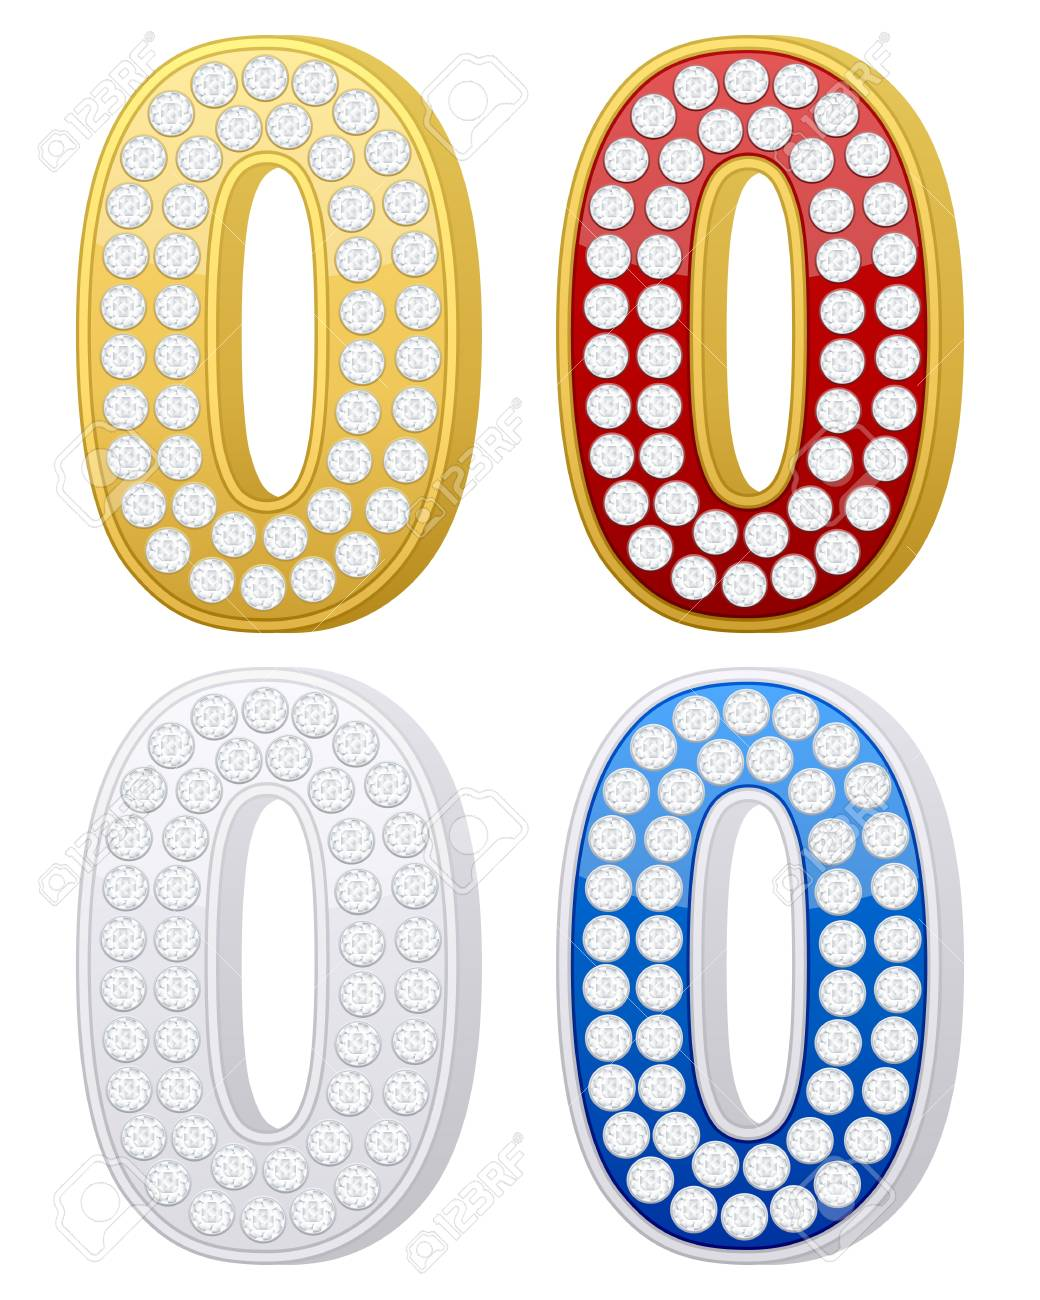 jewelry number zero set on a white background. Vector illustration. Stock Vector - 9244139